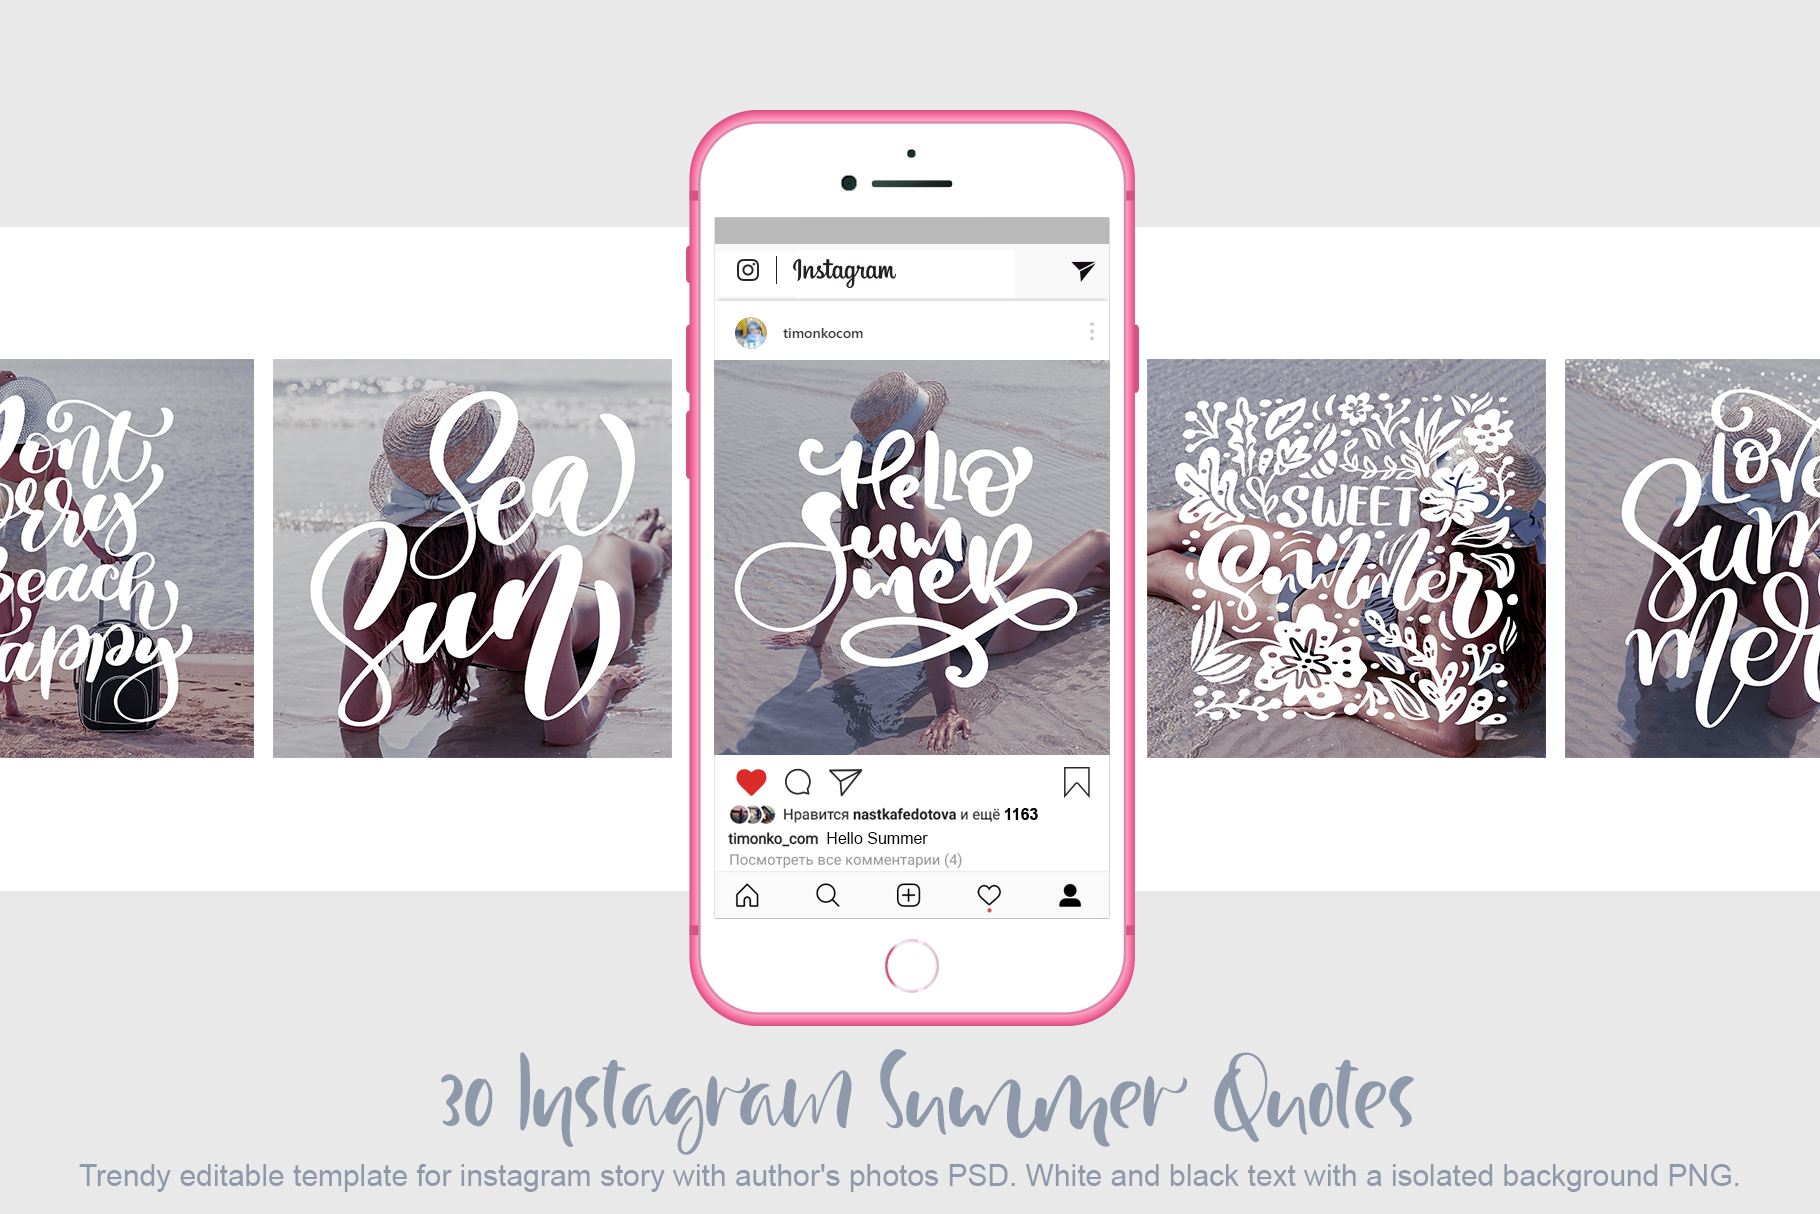 30 Template Instagram Summer Quotes: Freaky Mood Instagram Quotes - title01 1